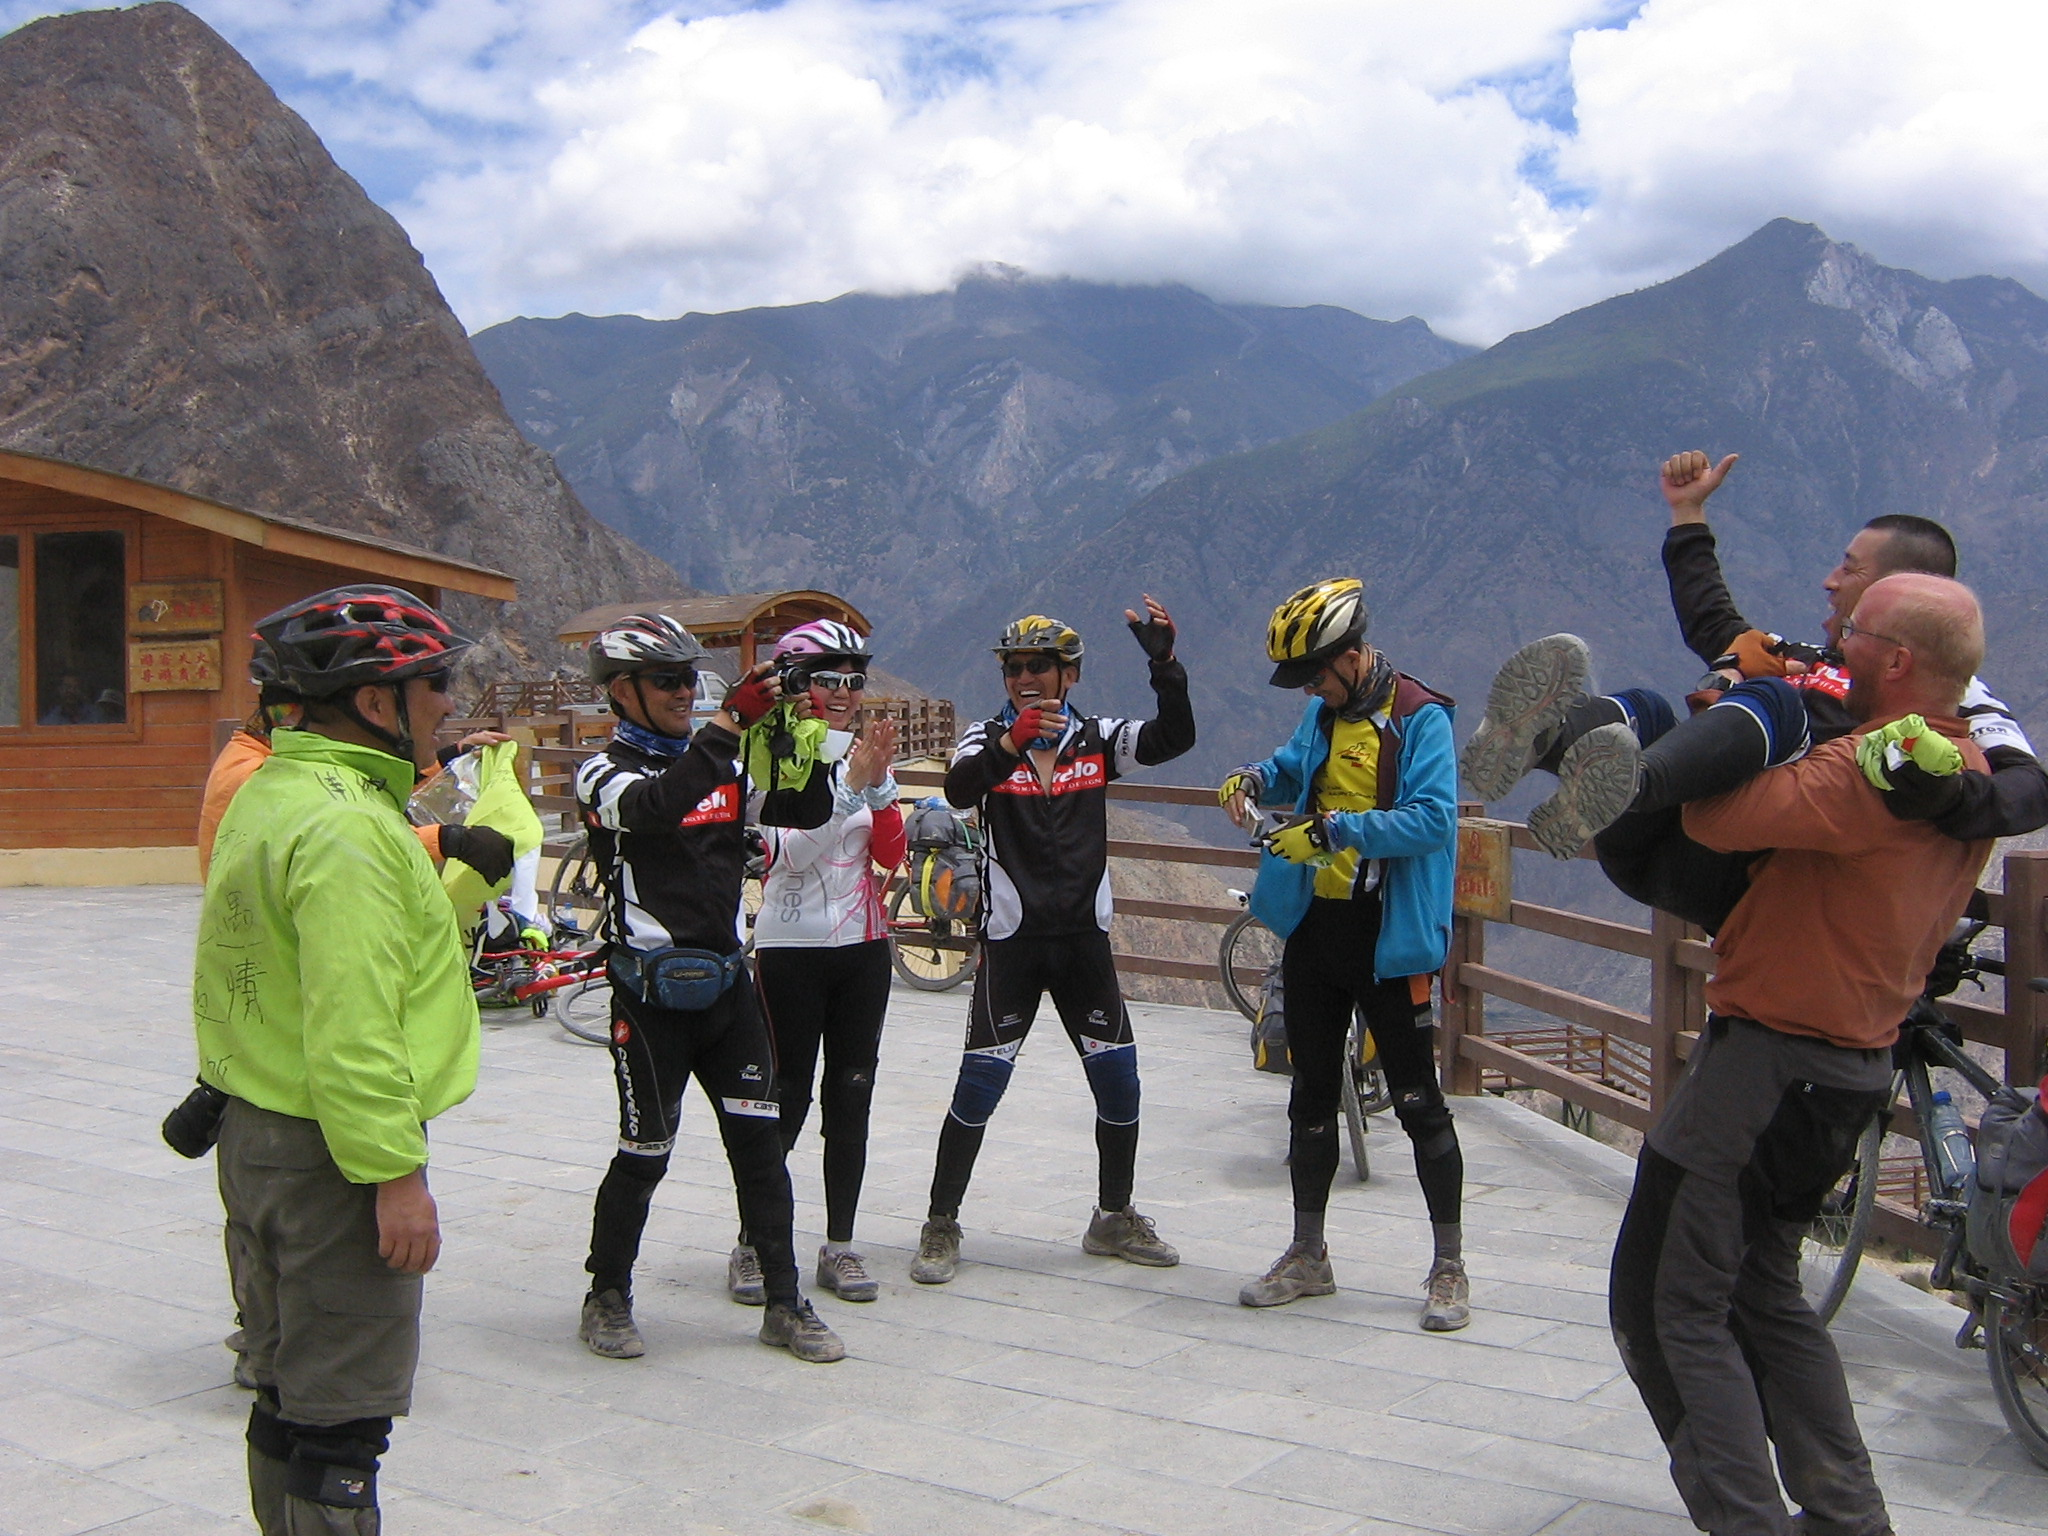 meeting a chinese group of cyclists